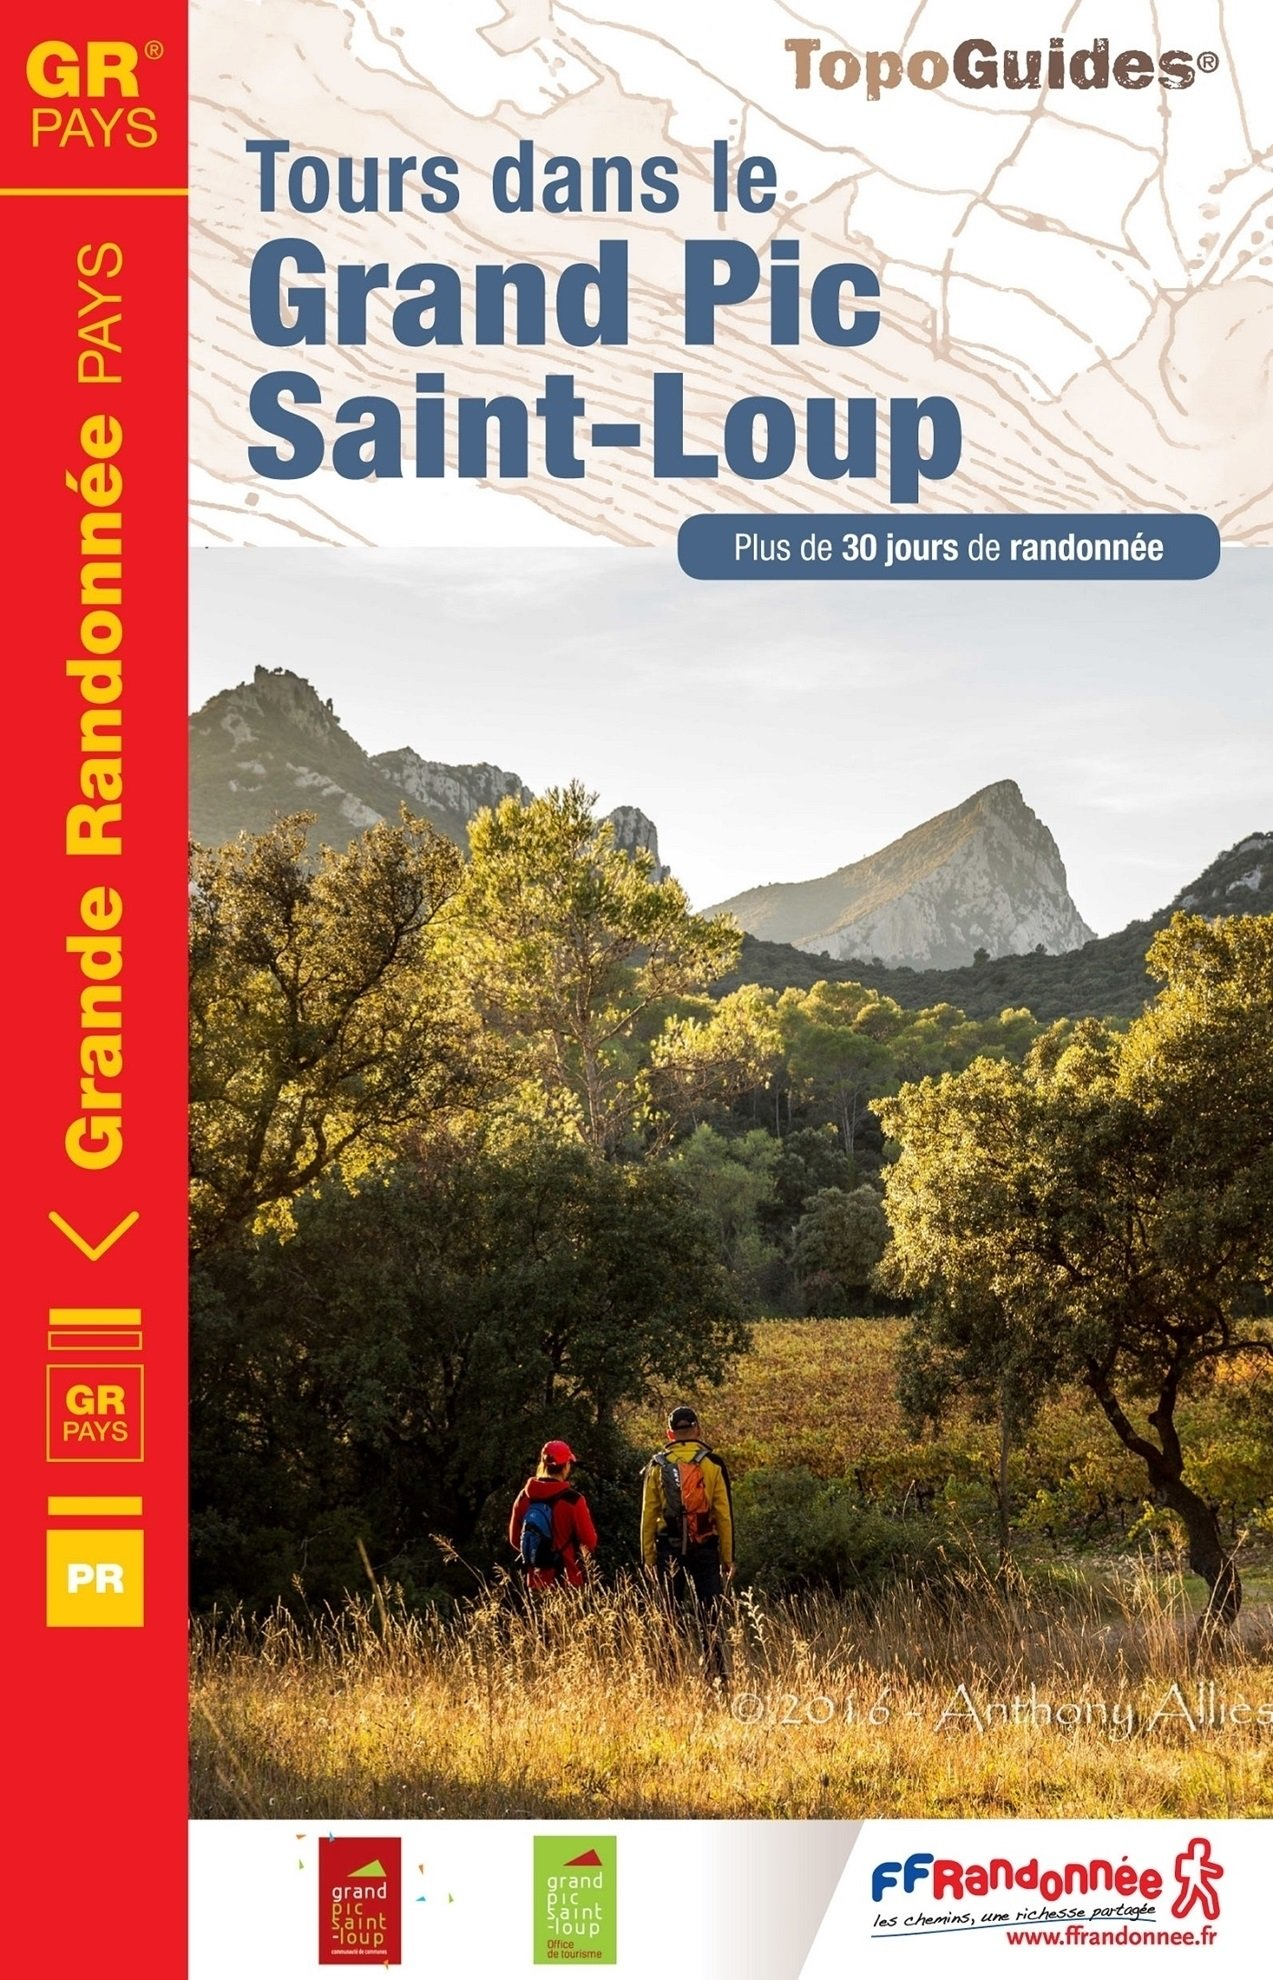 TG3401 Grand Pic Saint-Loup GR3401 9782751408830  FFRP Topoguides  Meerdaagse wandelroutes, Wandelgidsen Languedoc, Hérault, Aude, Tarn